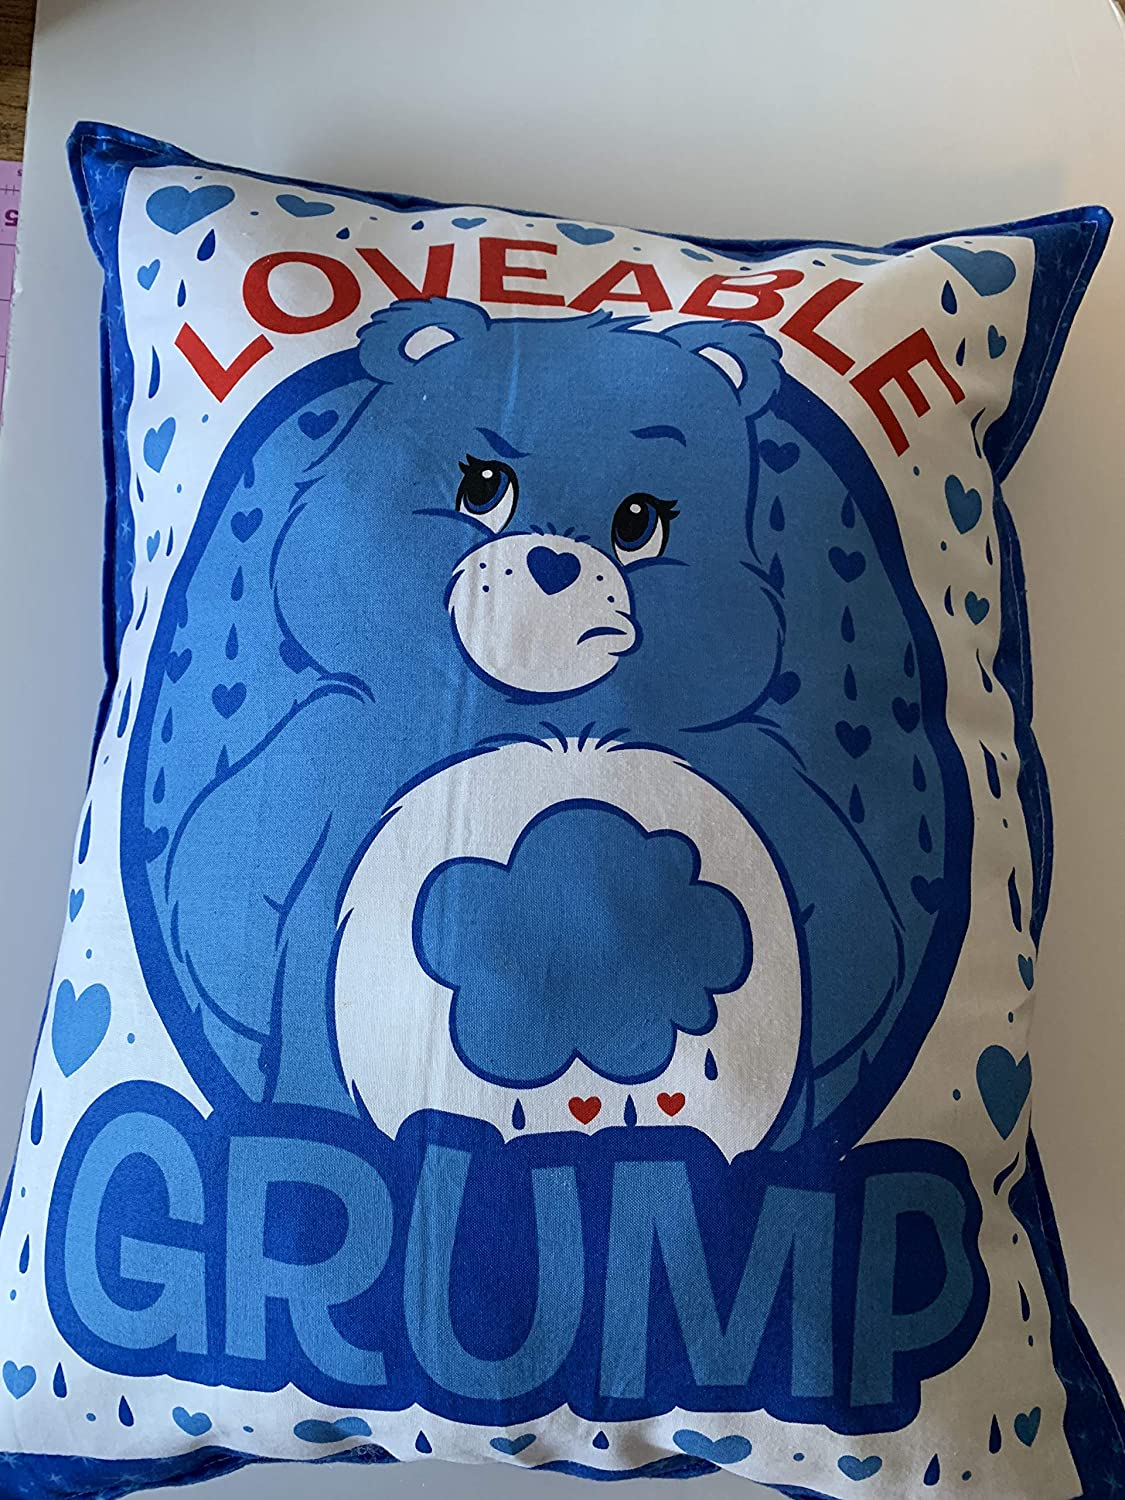 washable weighted pillows 5 lbs Care Bear pillows Large Weighted Childrens pillow kids pillow